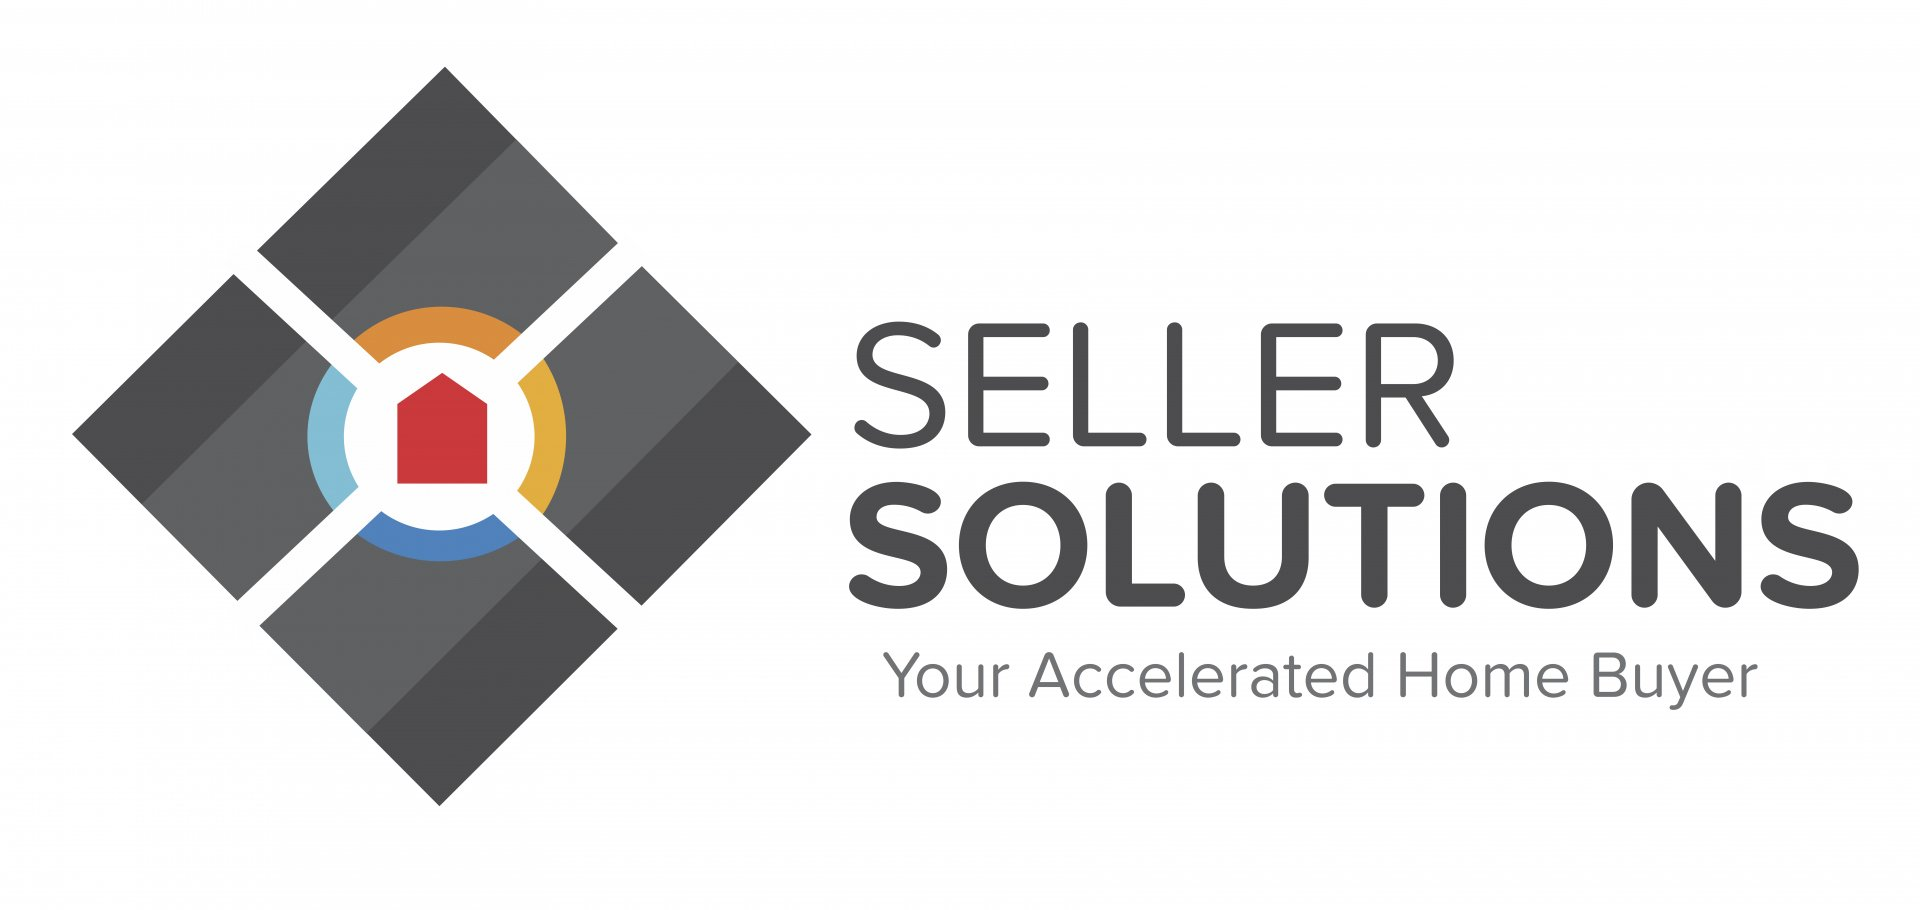 Property Seller Solutions logo